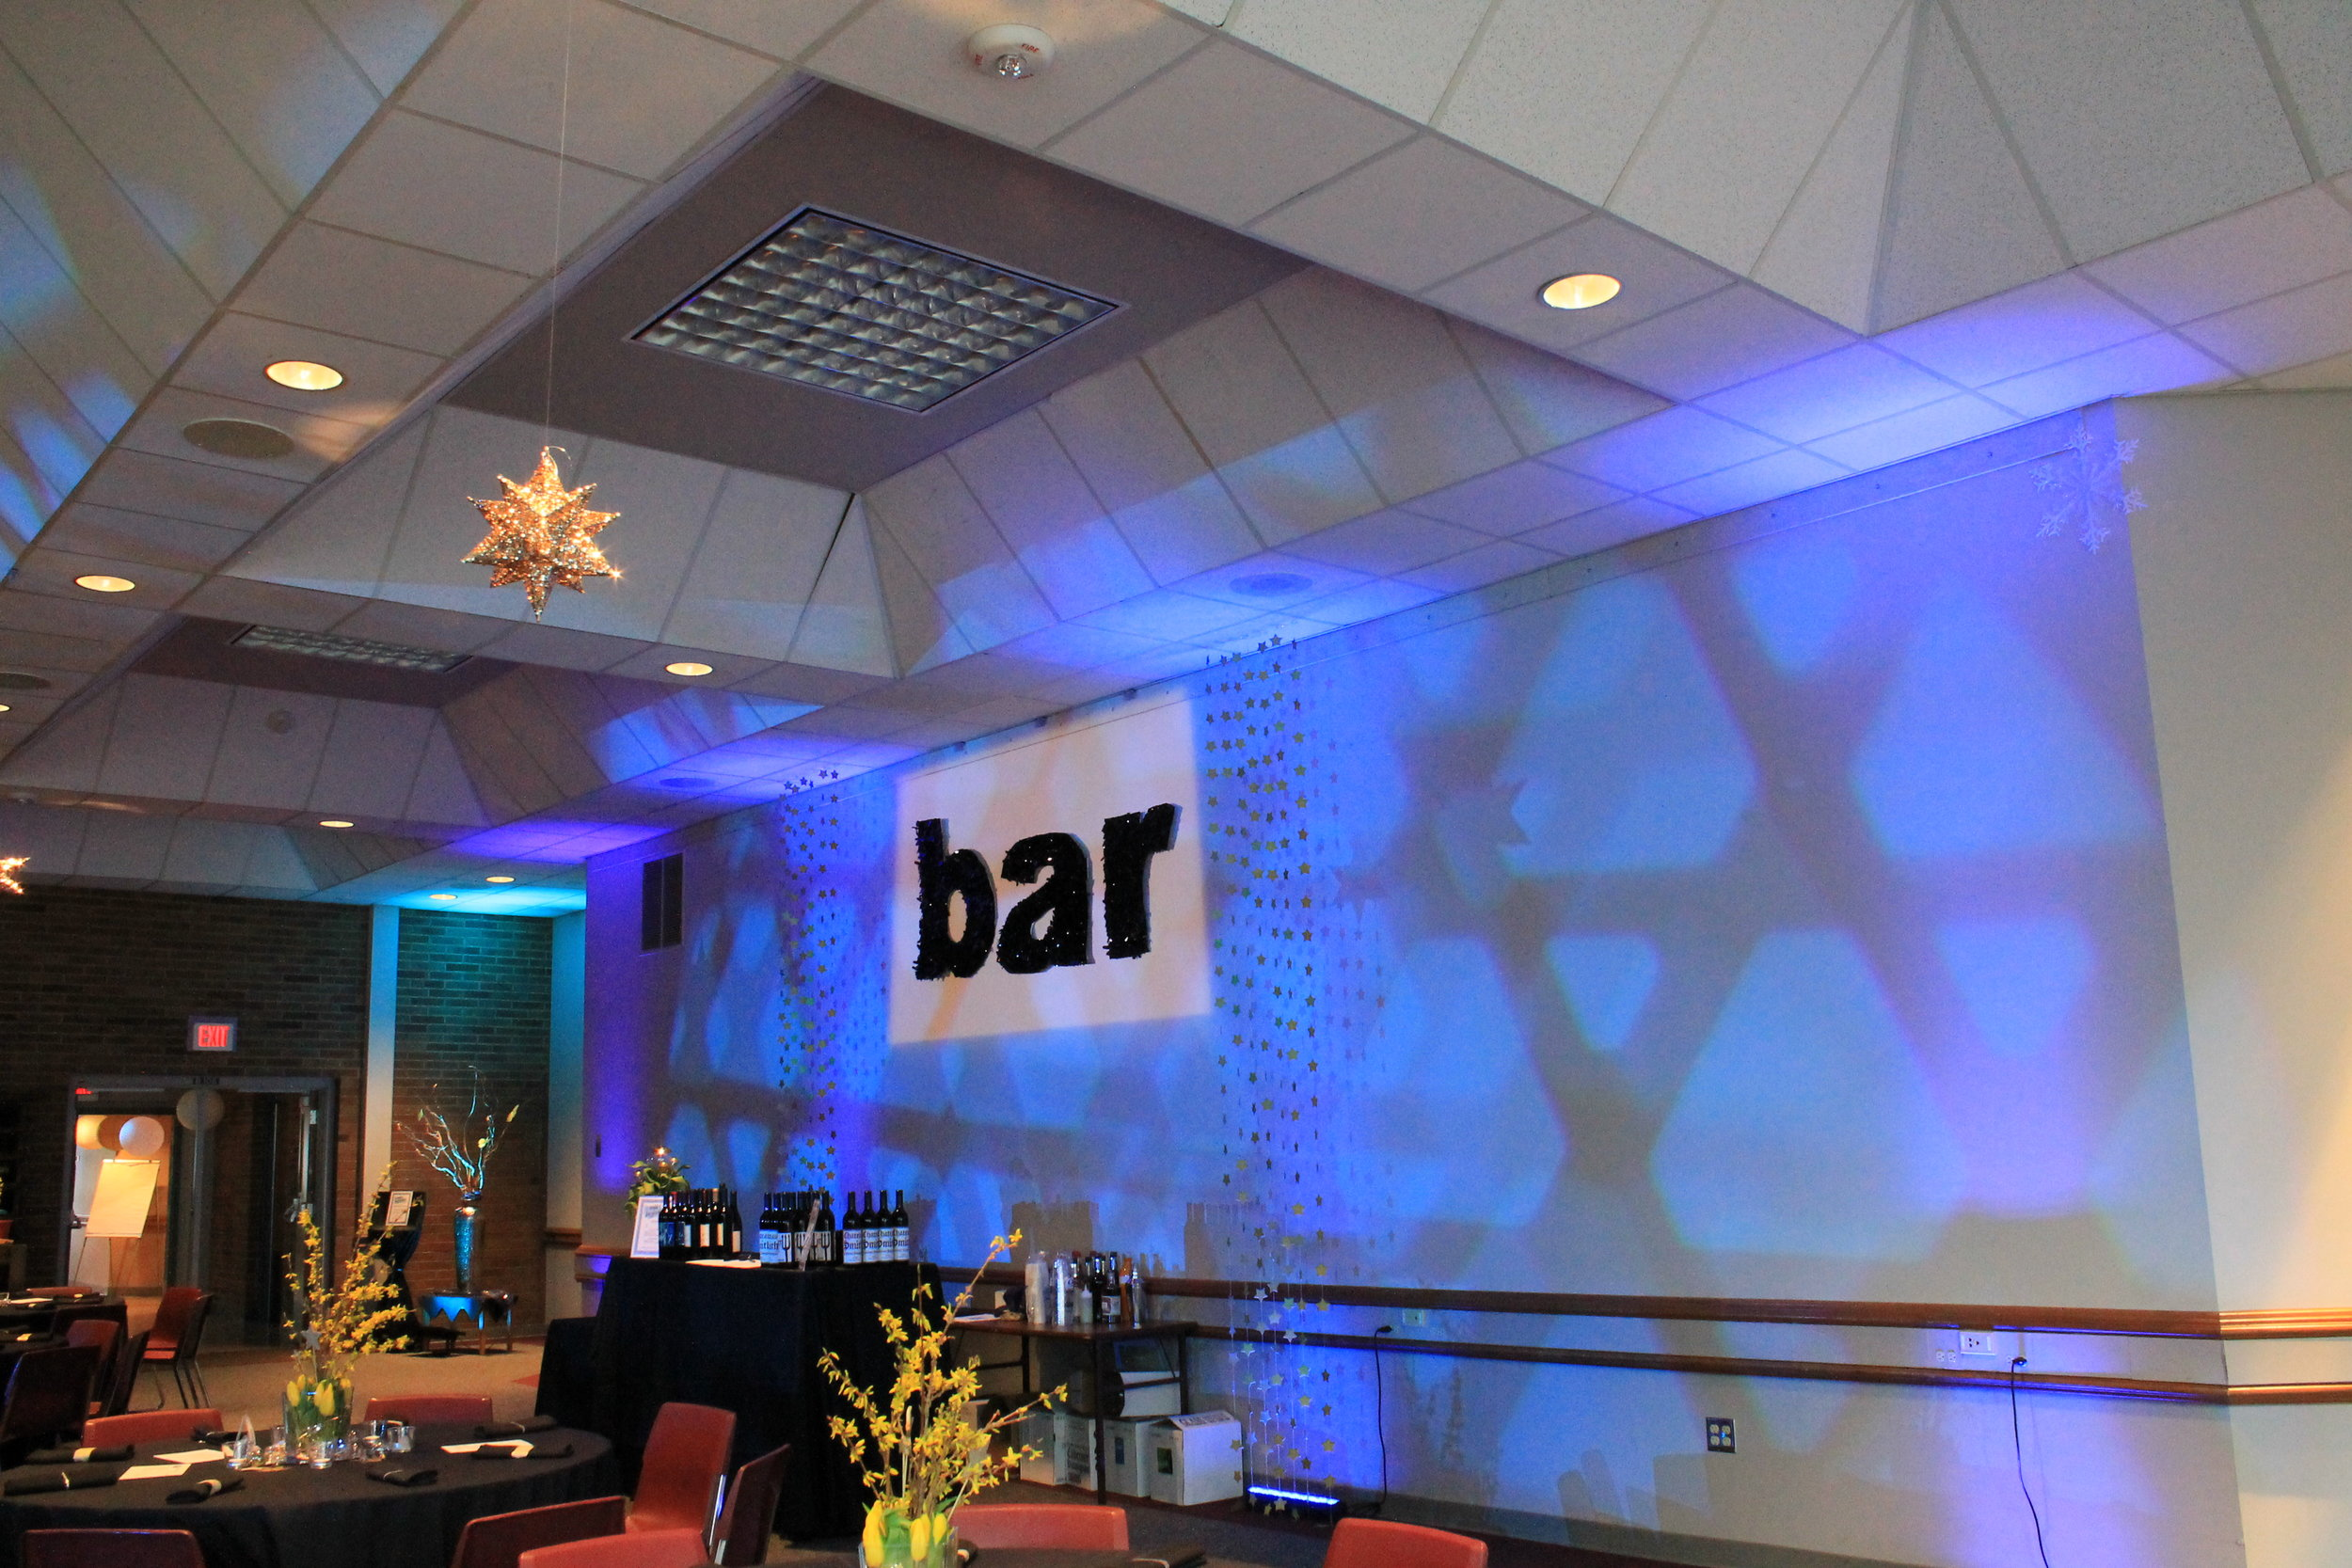 Spot light on the bar sign and pattern gobo's for an auction